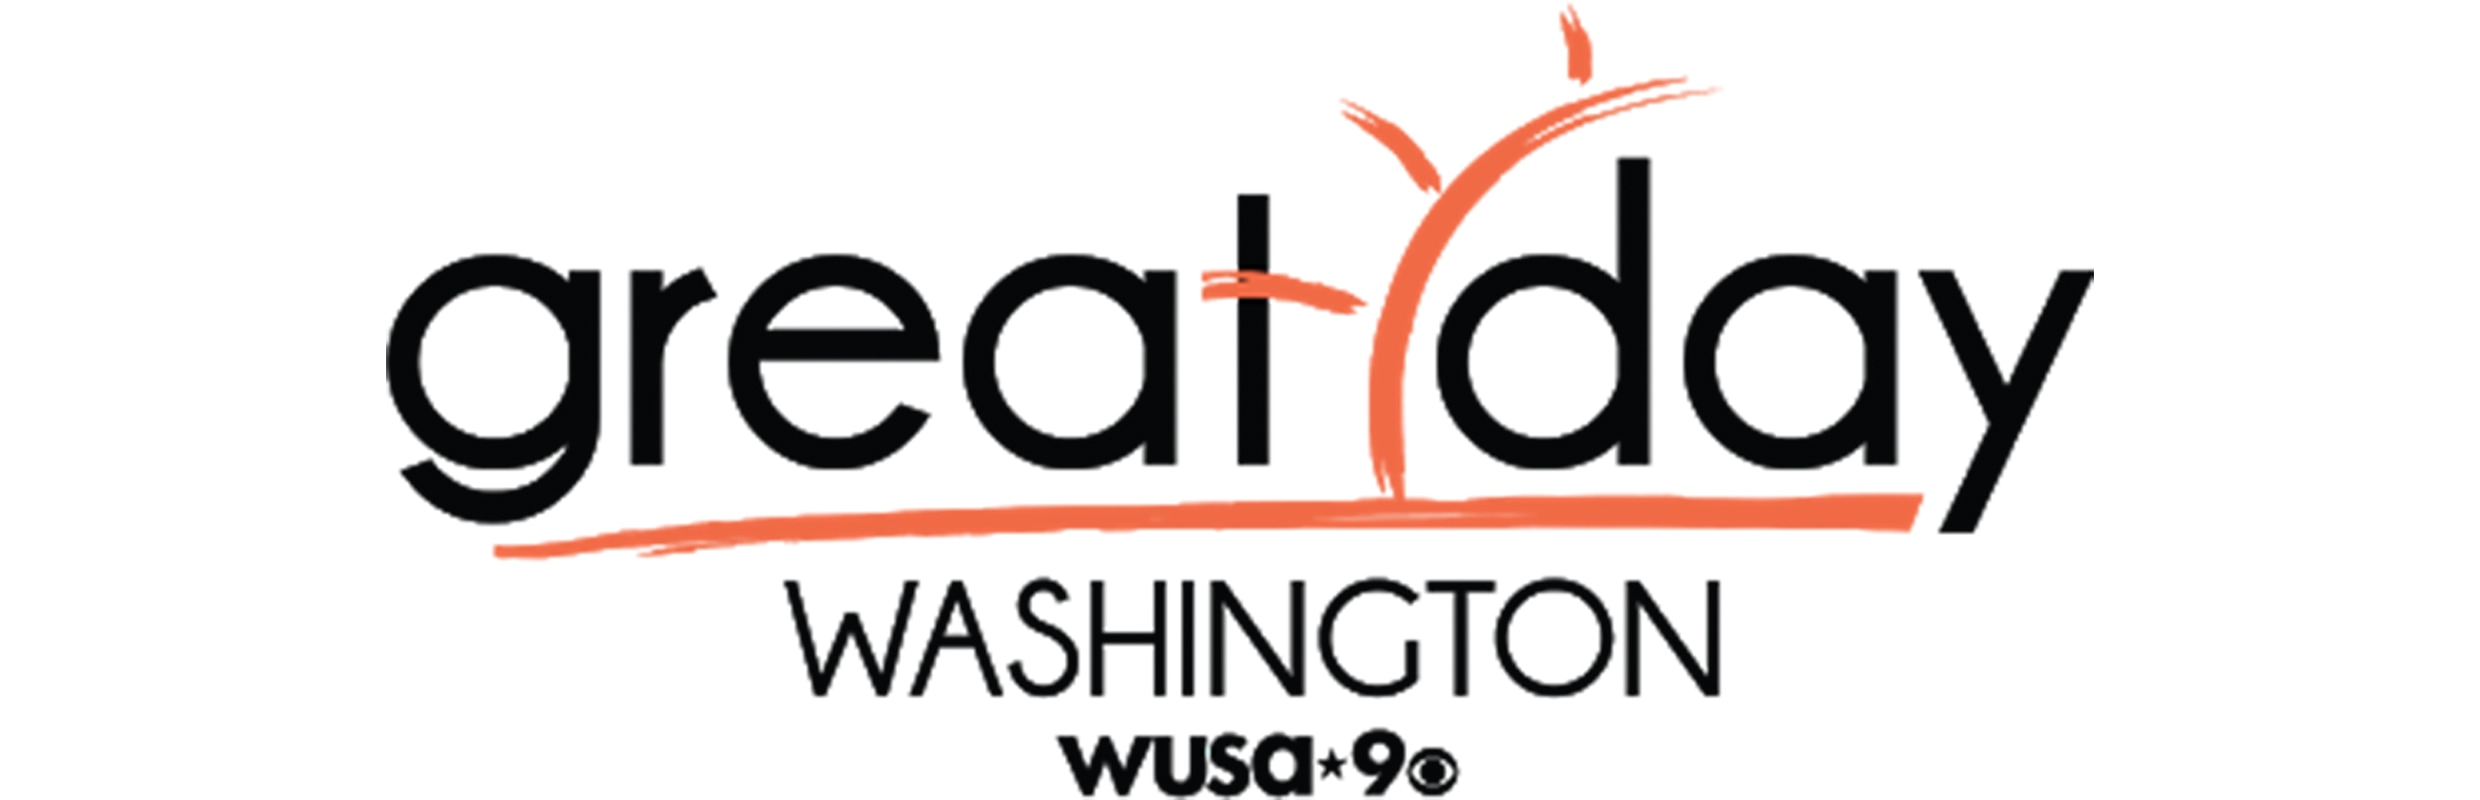 Great day washington wusa 9 selected